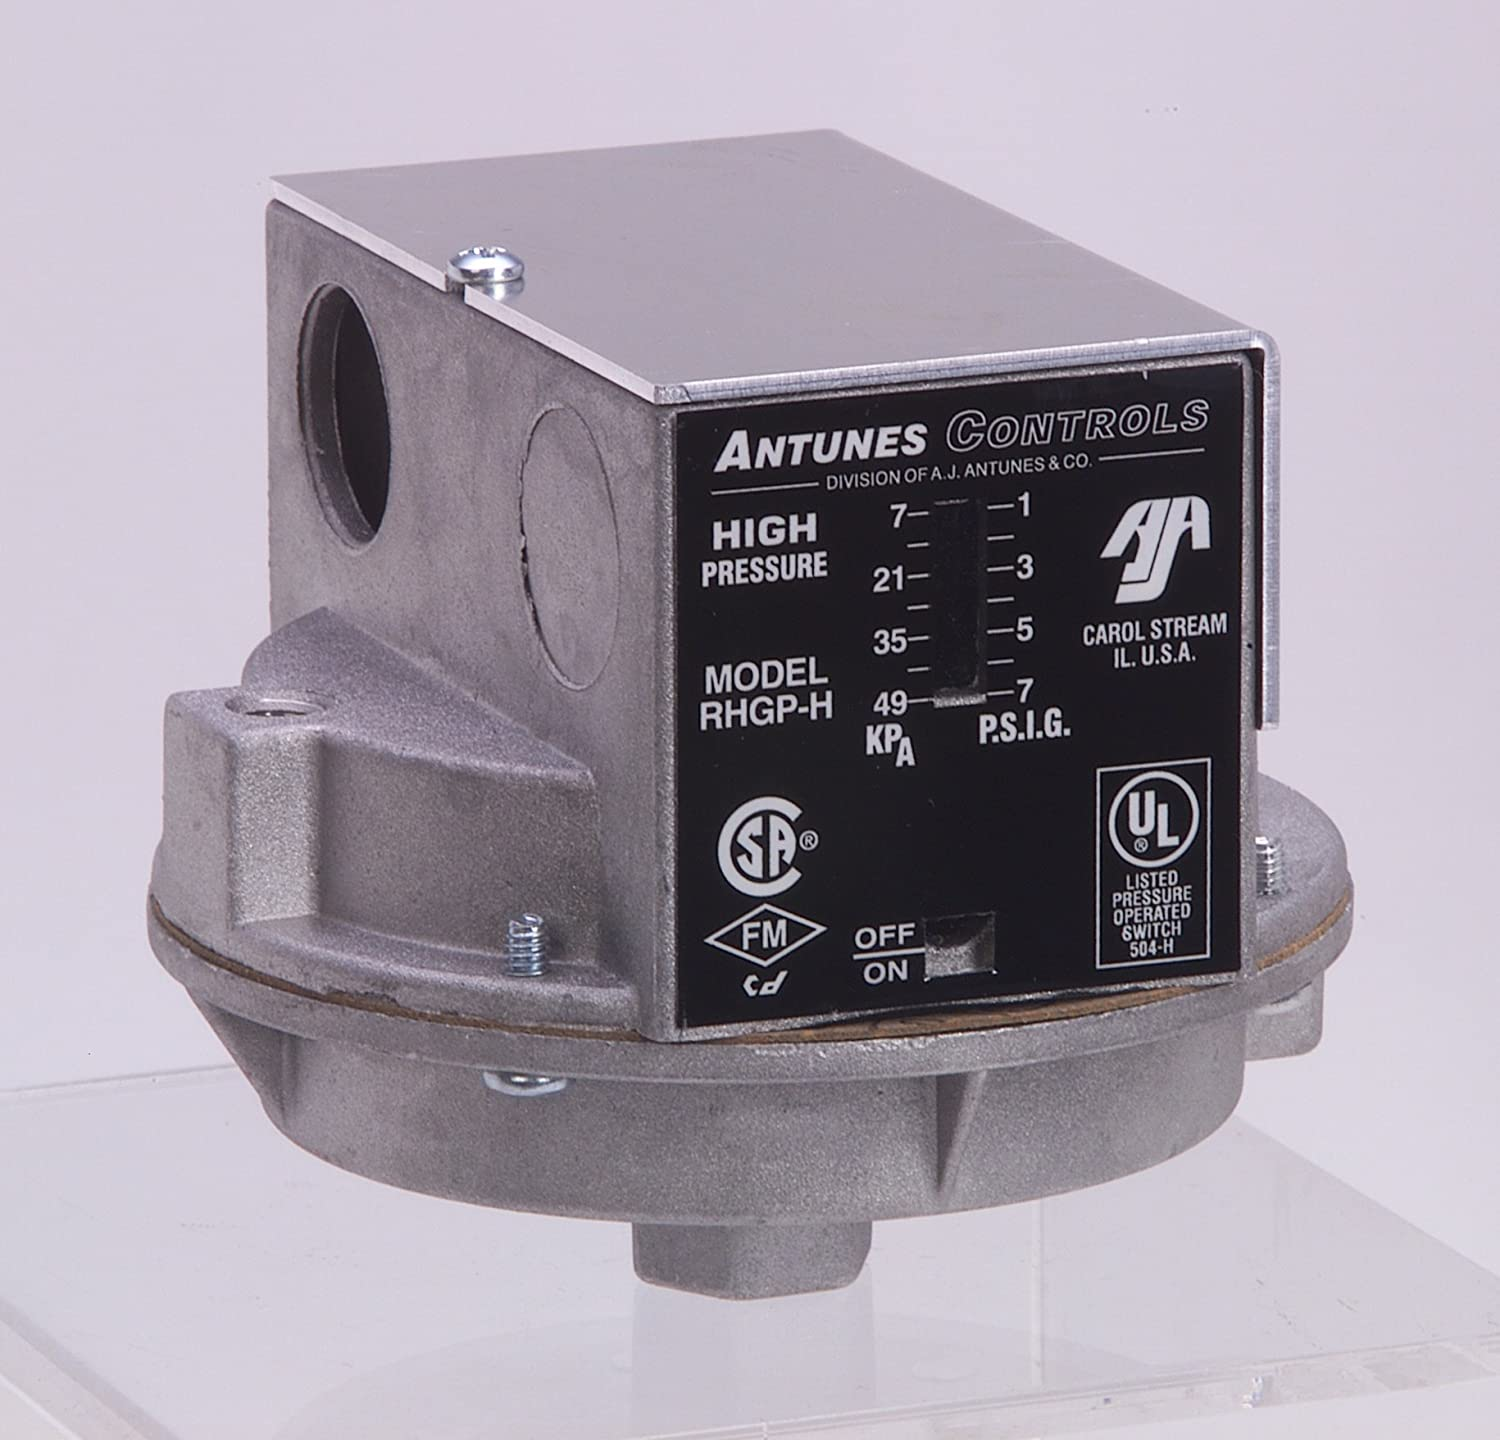 Antunes Controls 803113401 Models RHGP-H and RLGP-H Single Gas Switches